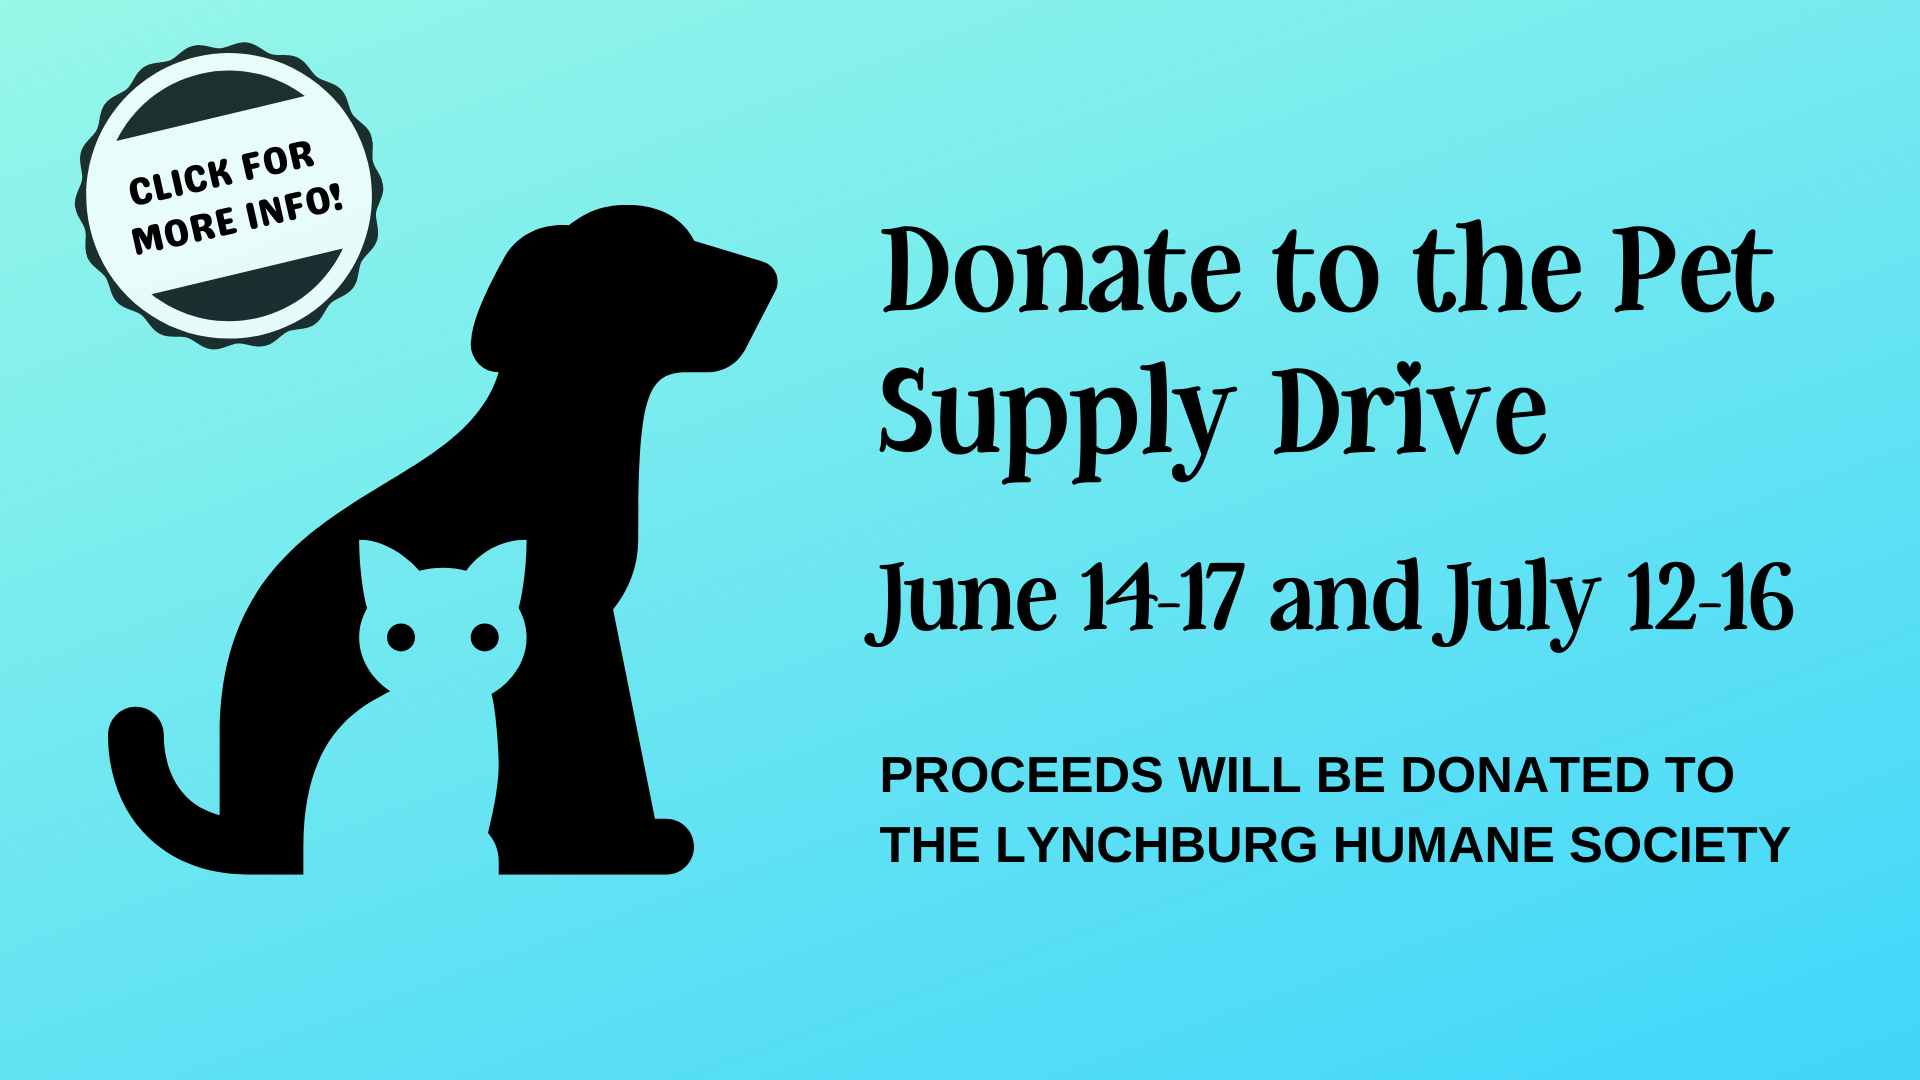 Promotion for a Pet Supply Drive happening at the Lynchburg Public Library June 14th through 17th and July 12th to July 16th. Click on the graphic for more details.